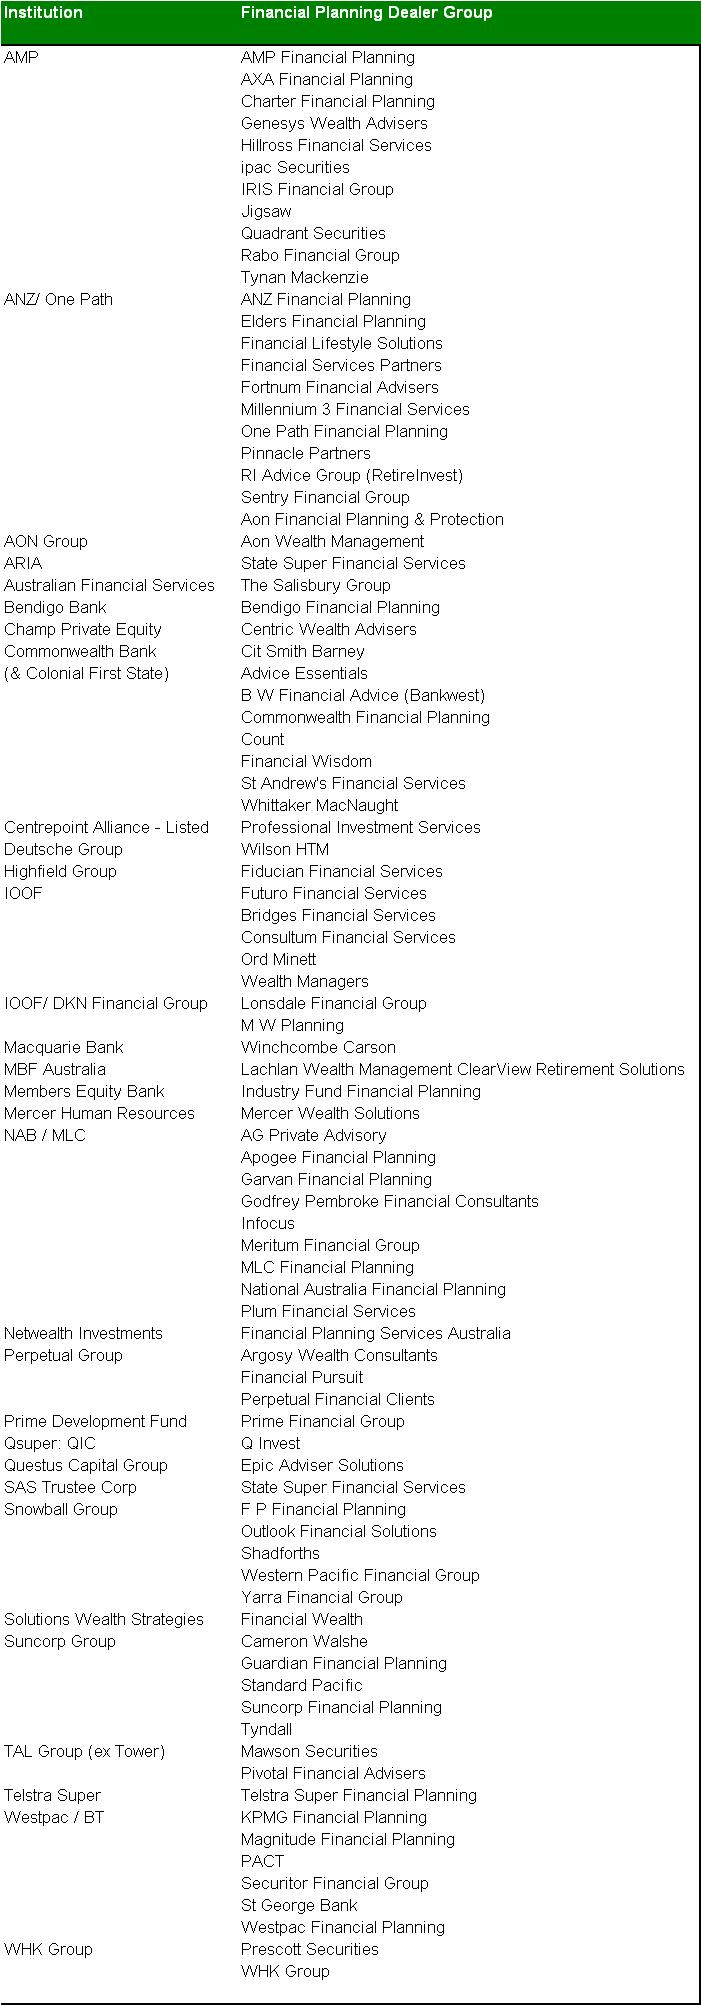 20120528 Listing of institutional ownership of planning groups - provided by www.ratesmate.com.au